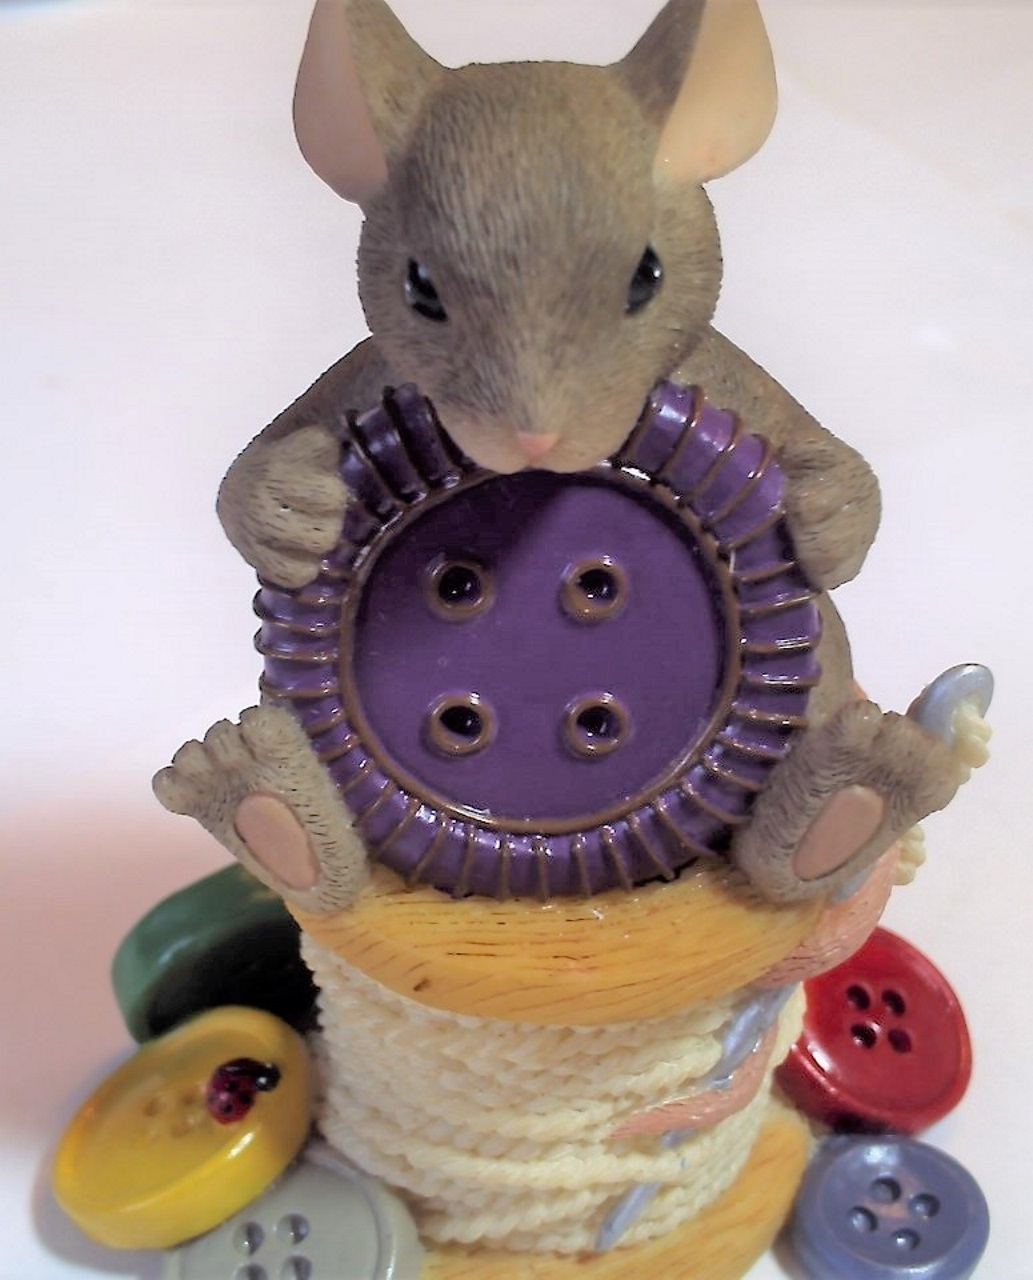 Charming Tails You're Cute As a Button 89/115 - Purple